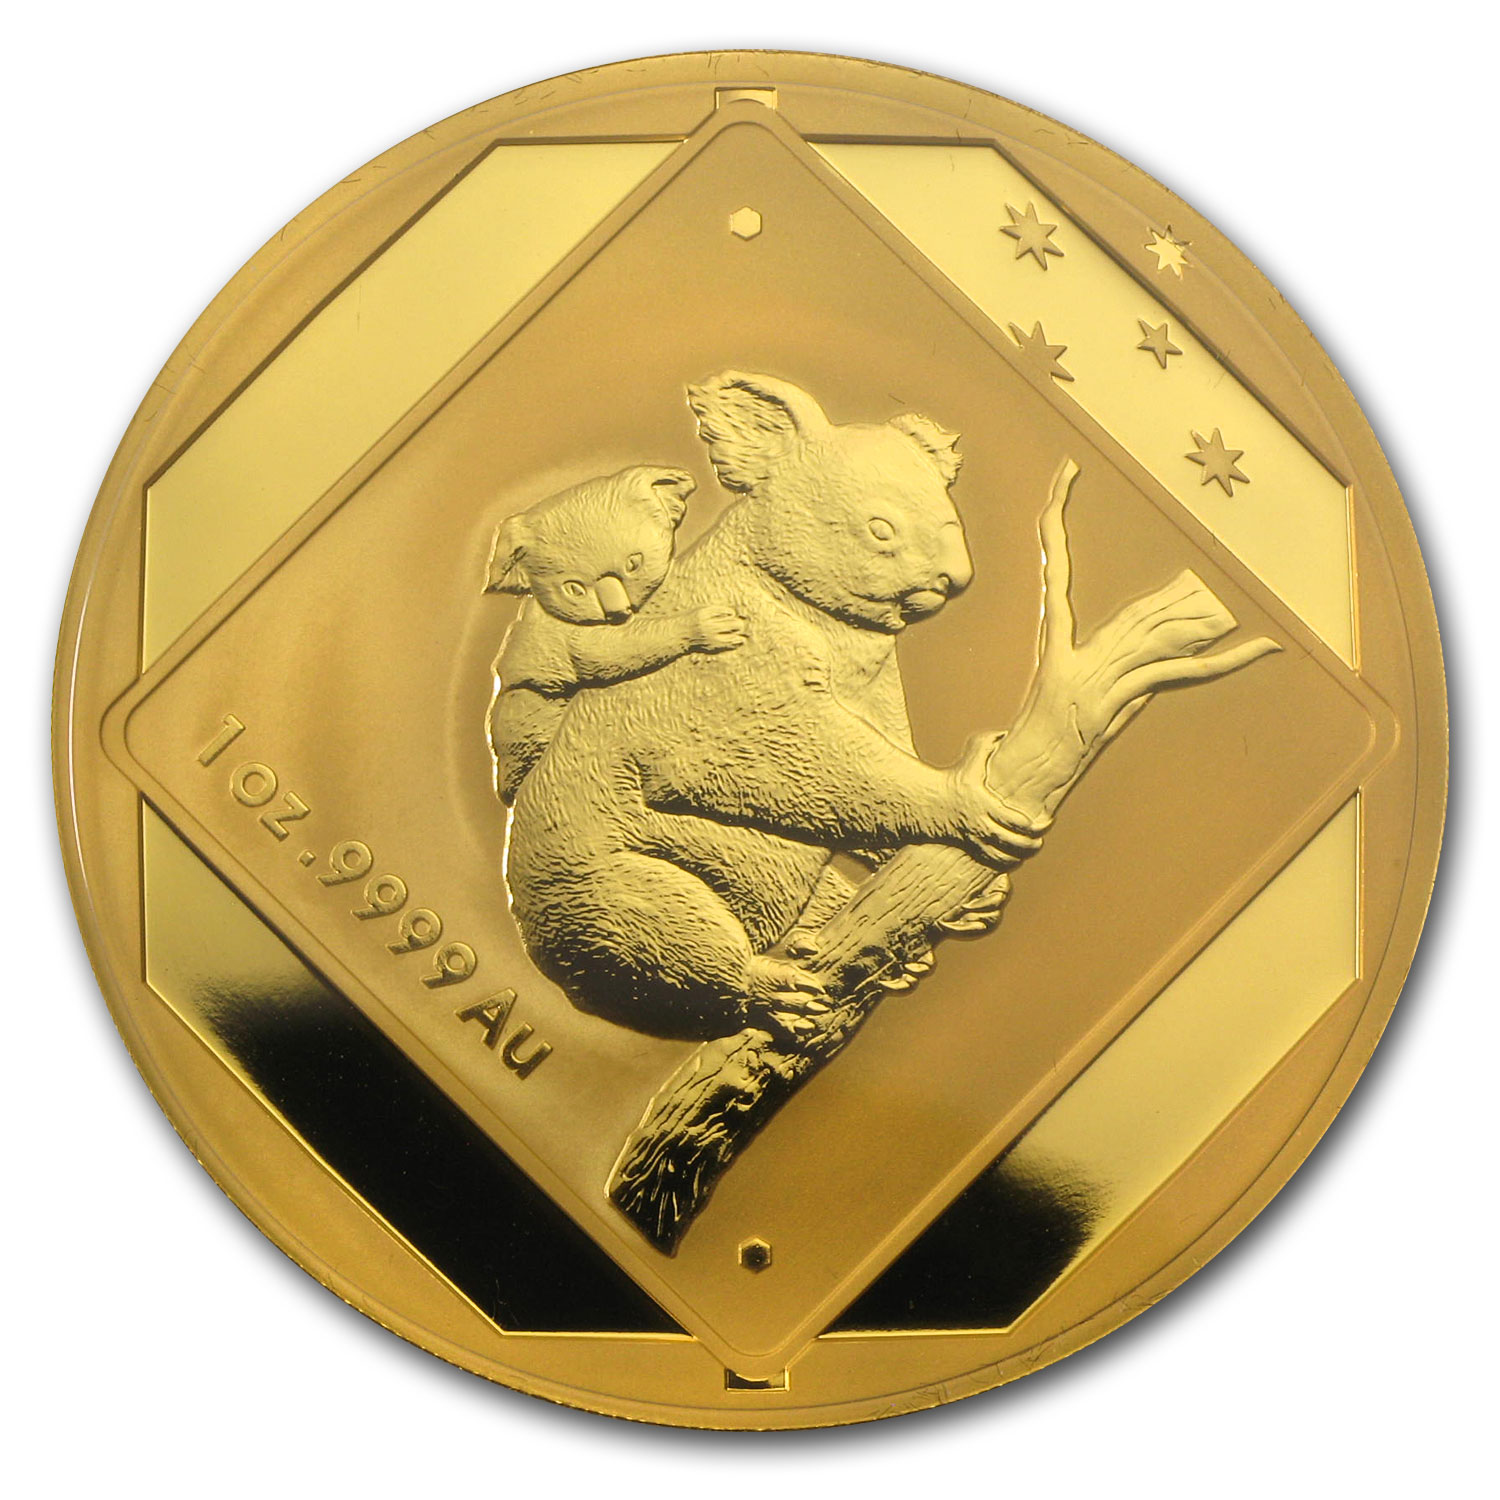 2014 Australia 1 oz Gold $100 Koala Road Sign BU